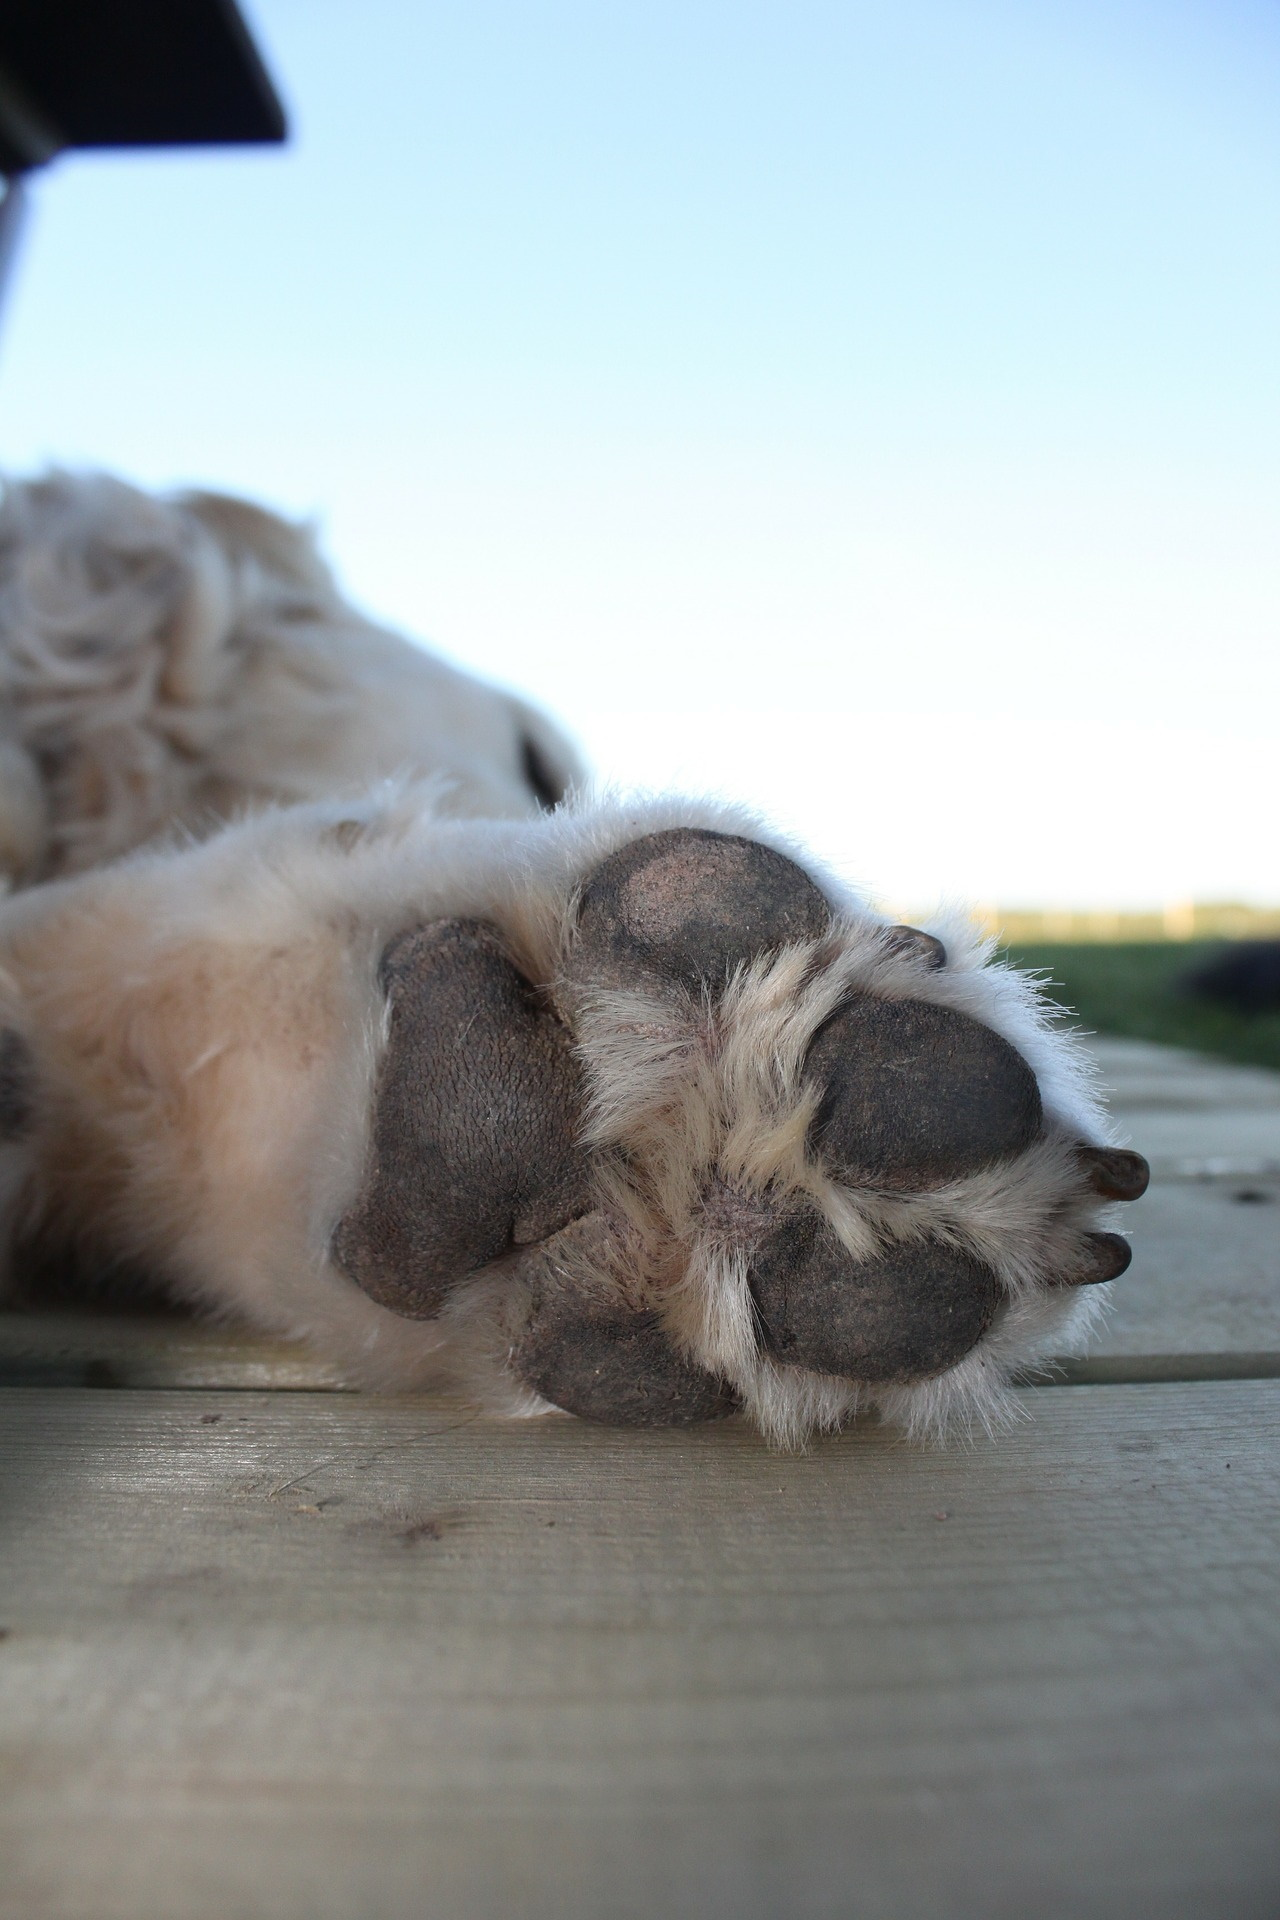 fun facts about dogs, dogs have sweat glands in their paw pads